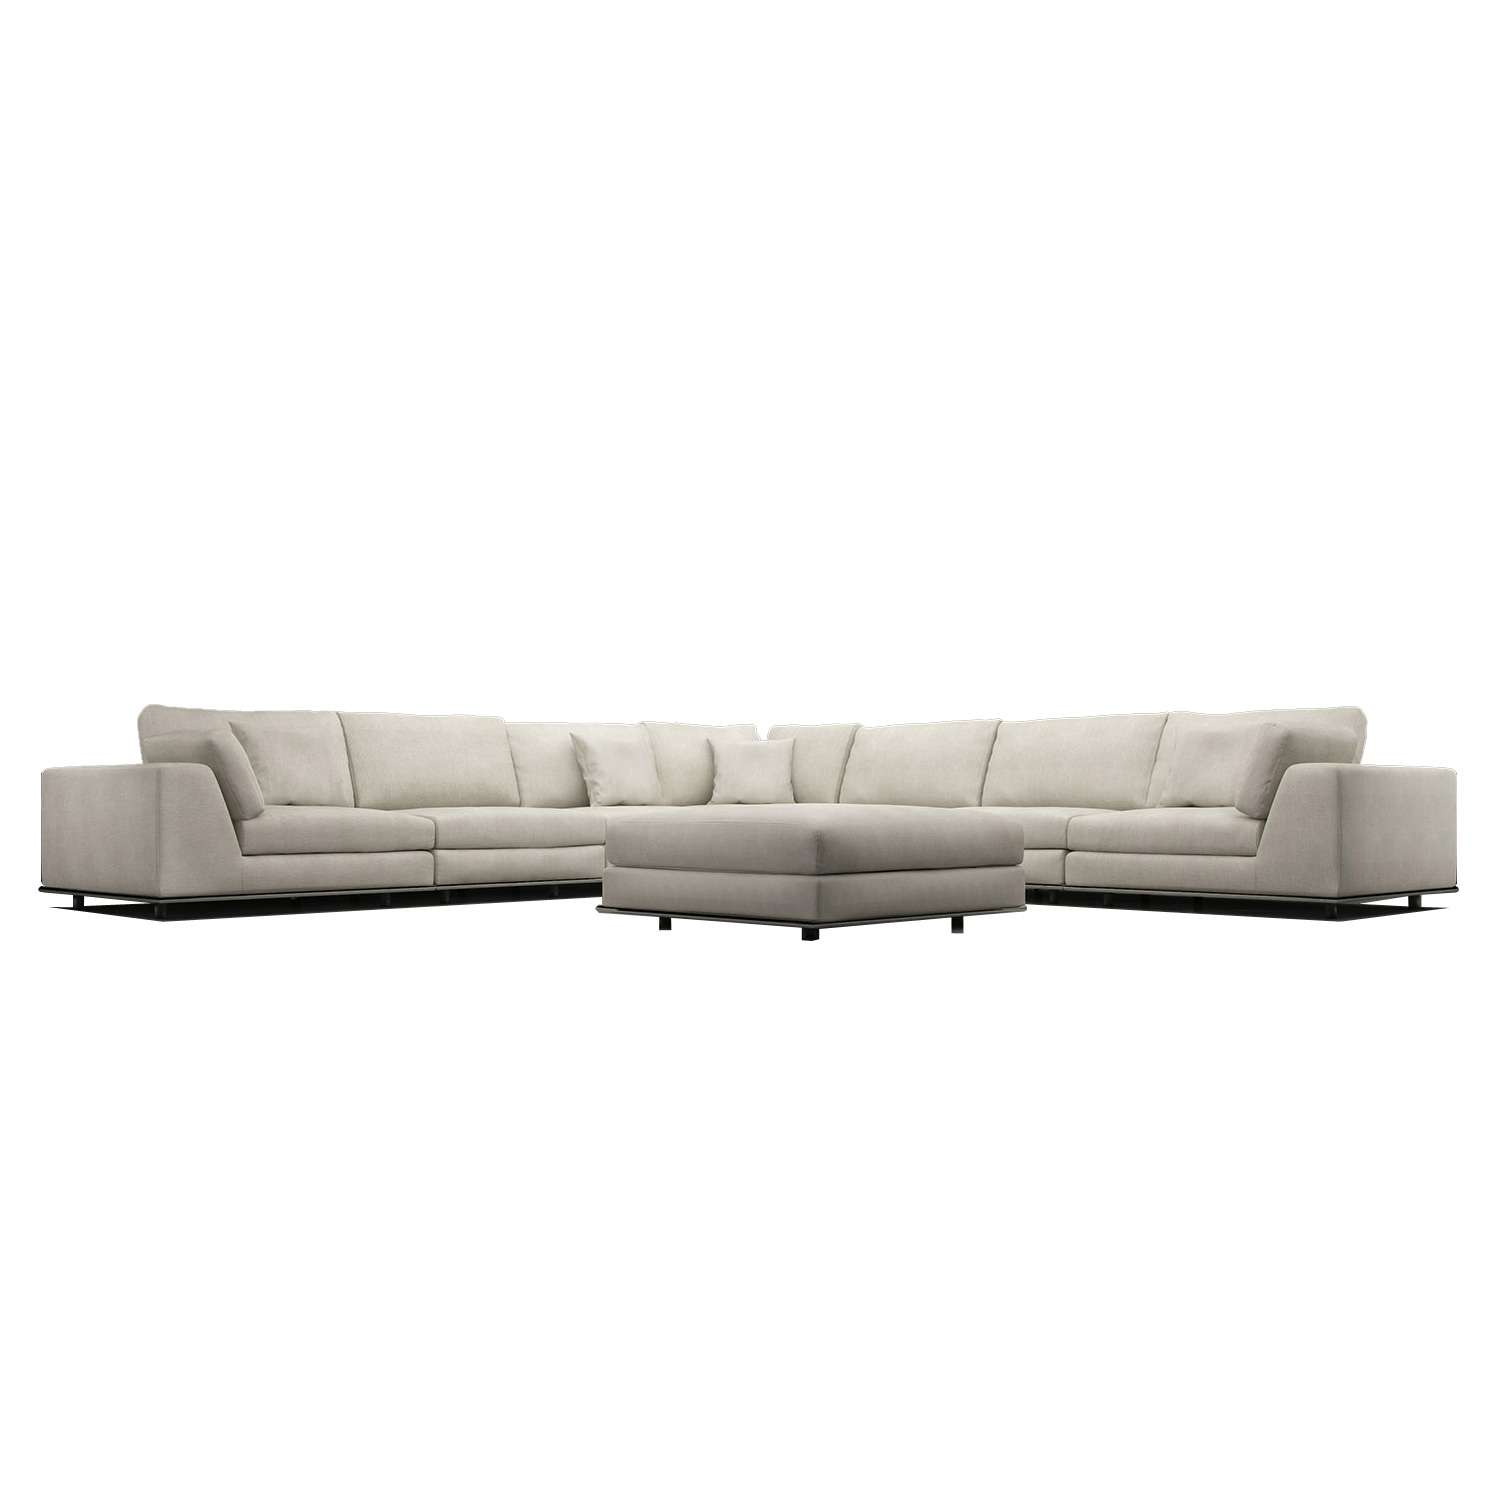 Small Leather Sectional | Large Sectional Sofas | U Shaped Sectional Sofa